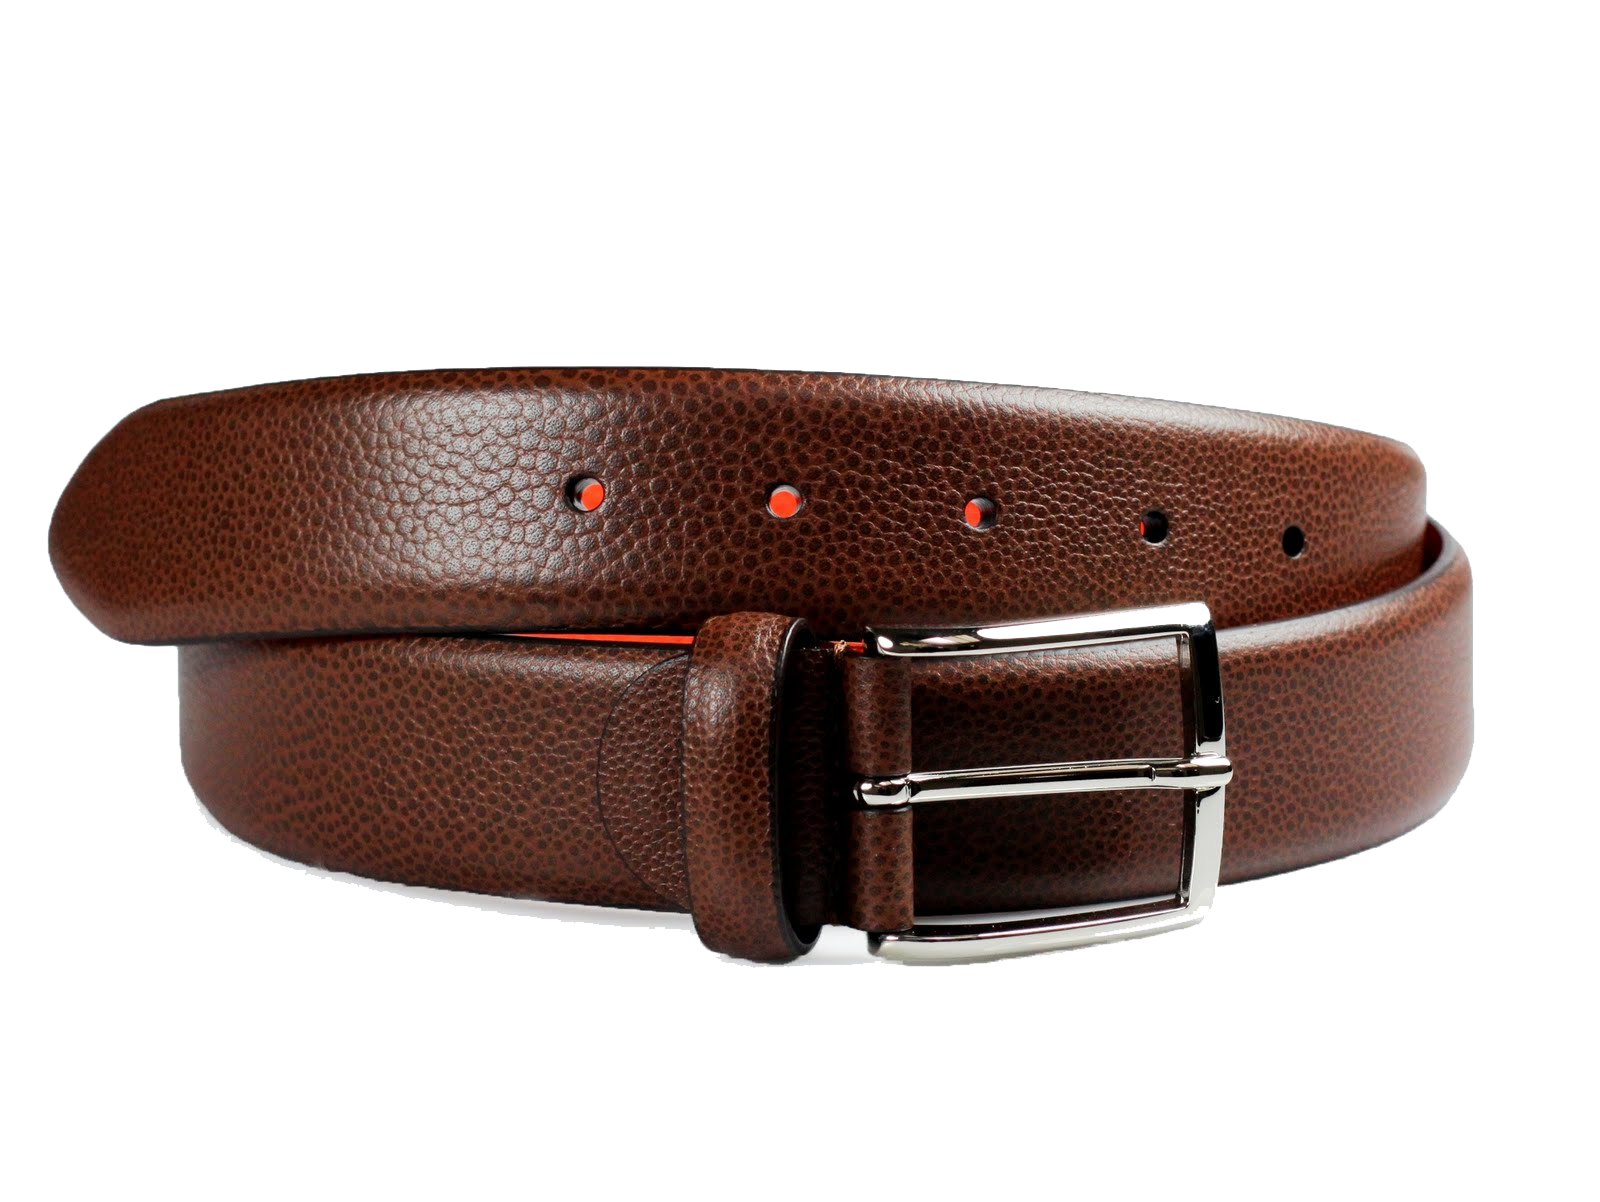 Sale! belt - Belt PNG